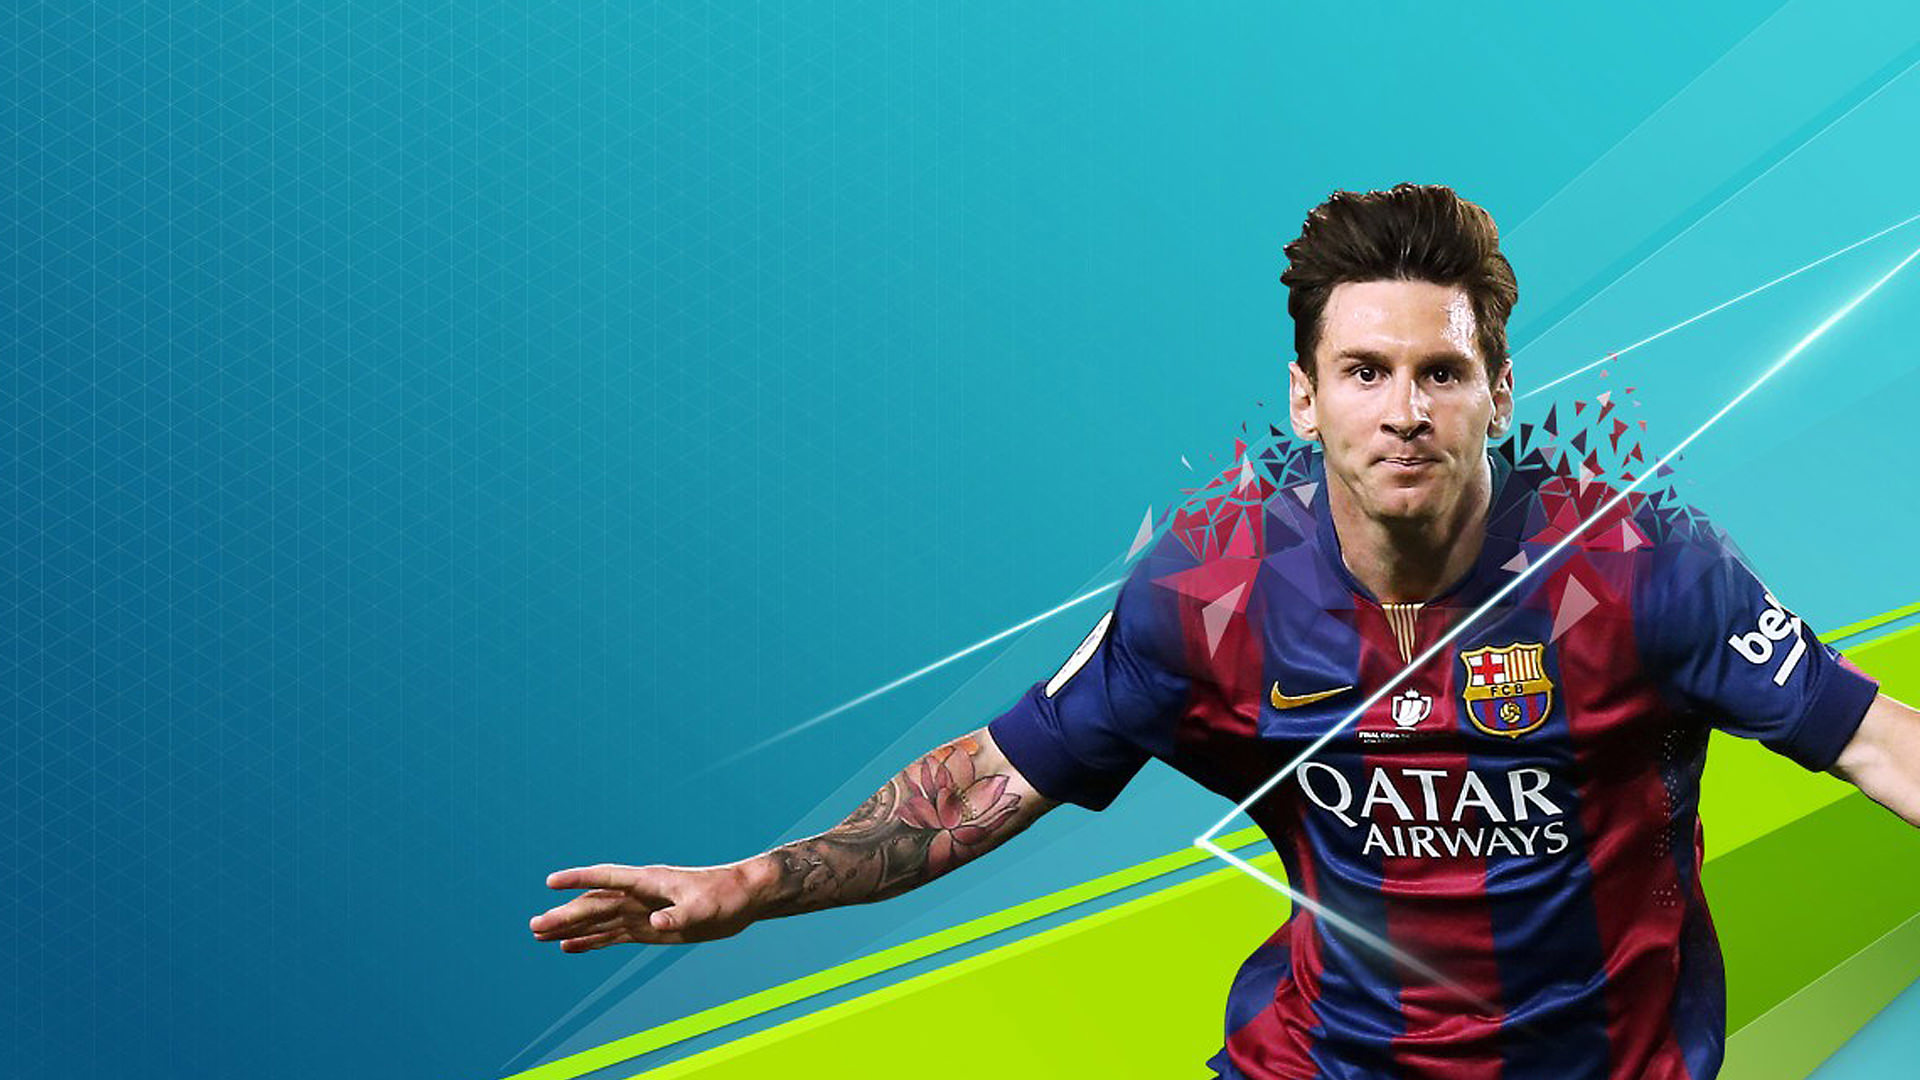 FIFA 16 Wallpapers FIFPlay 1920x1080